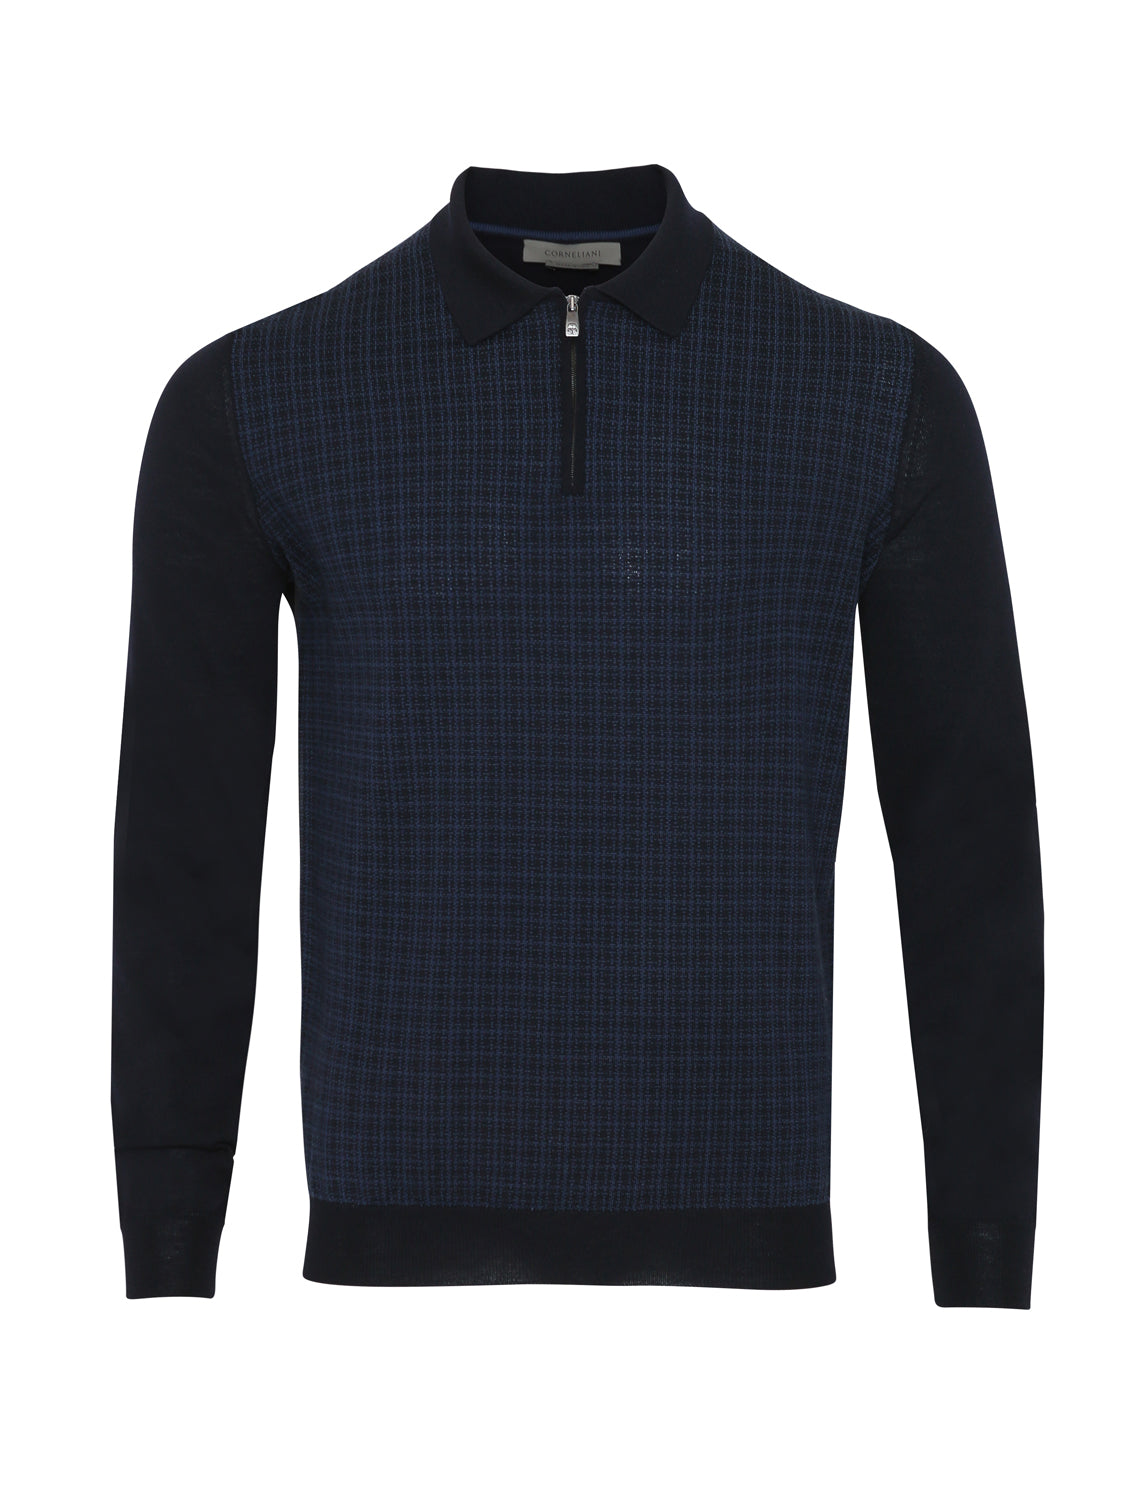 Corneliani Super Soft Virgin Wool Quarter Zip Textured Polo (Navy) - Union 22